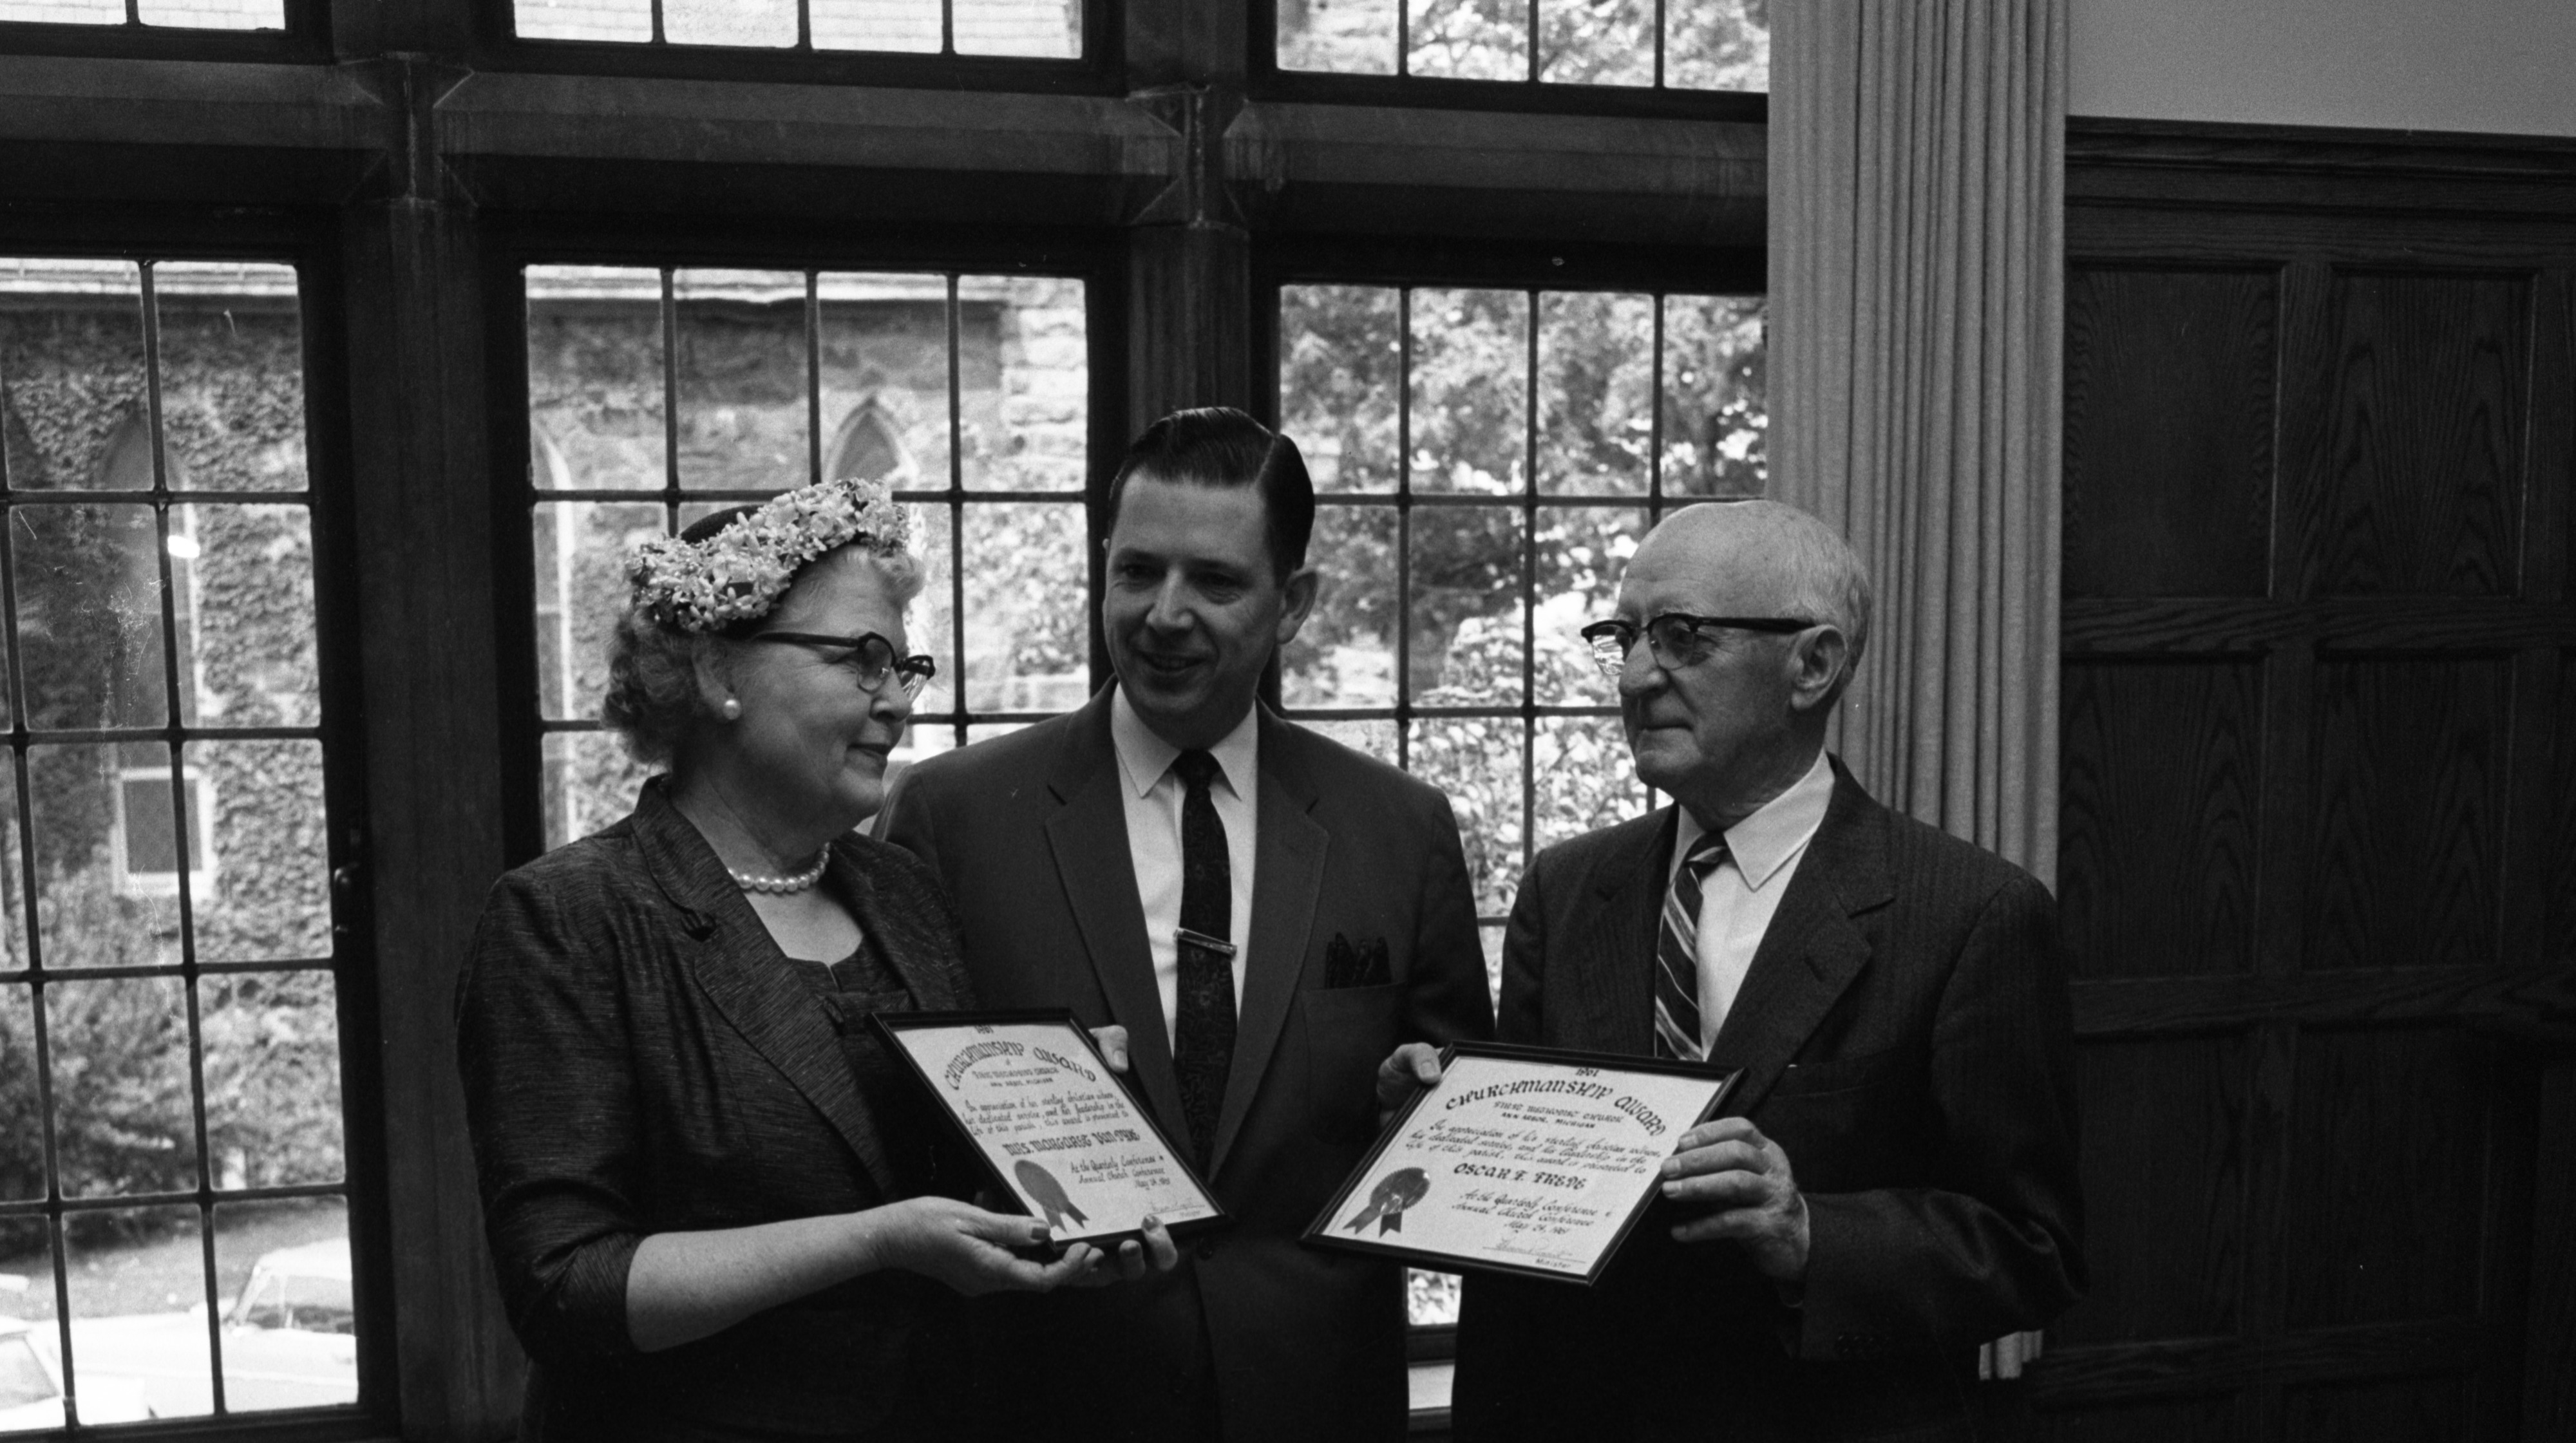 Mrs. Neil H. Van Dyke and Oscar F. Frede Receive Churchmanship Awards at First Methodist Church, May 1961 image